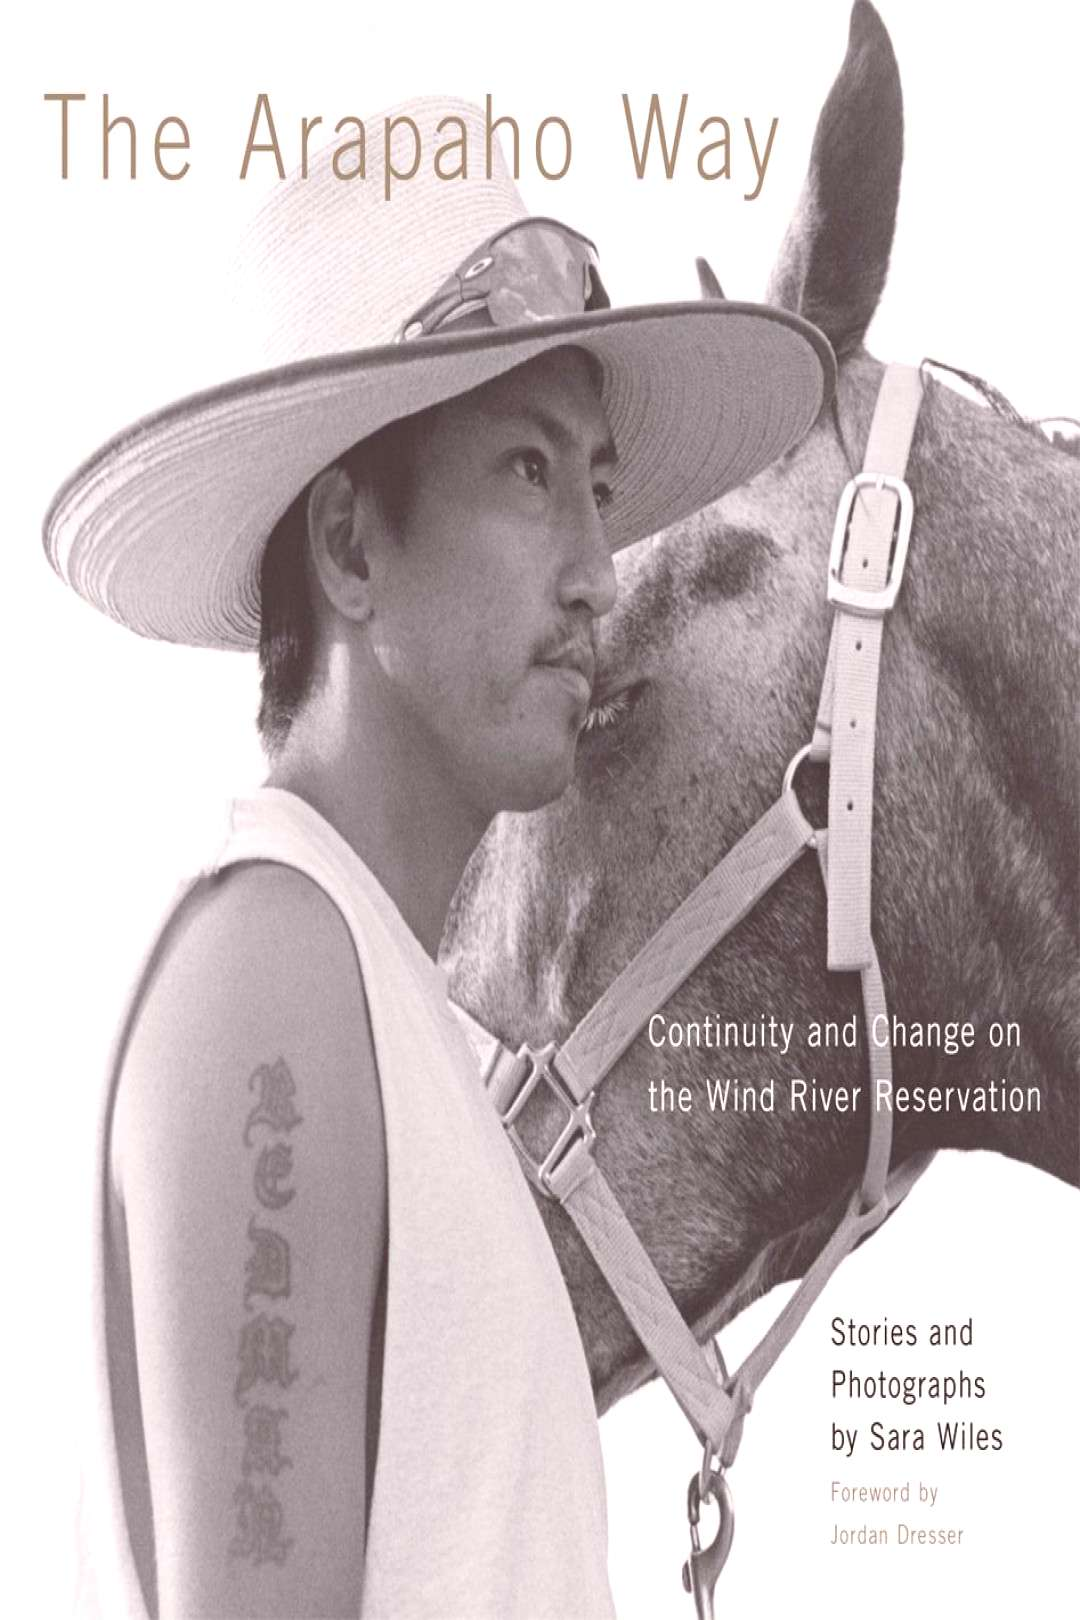 New from University of Oklahoma Press, with photographs and stories by Sara Wiles, The Arapaho Way